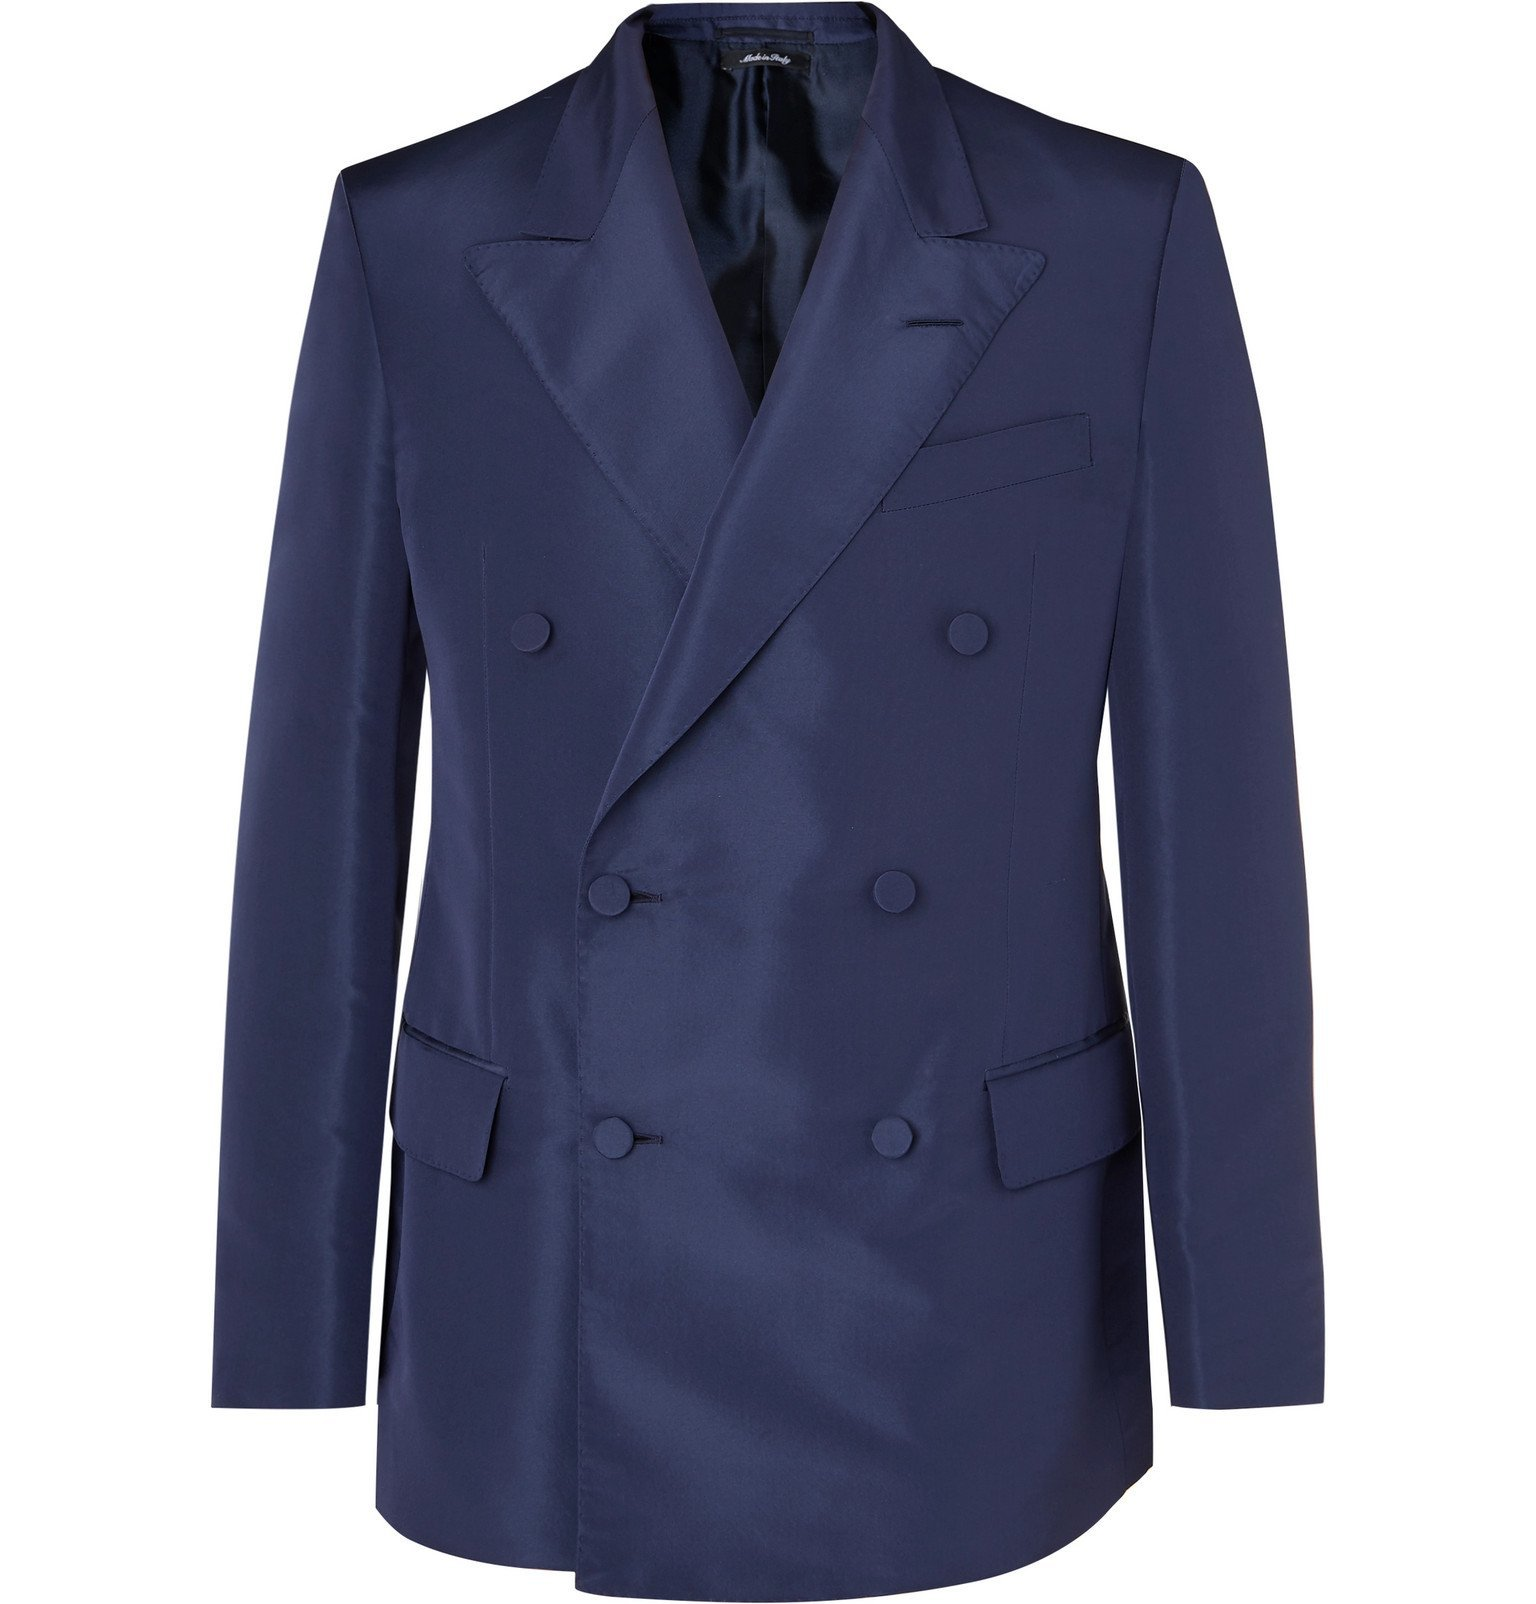 Dunhill - Navy Slim-Fit Double-Breasted Mulberry Silk Suit Jacket - Blue